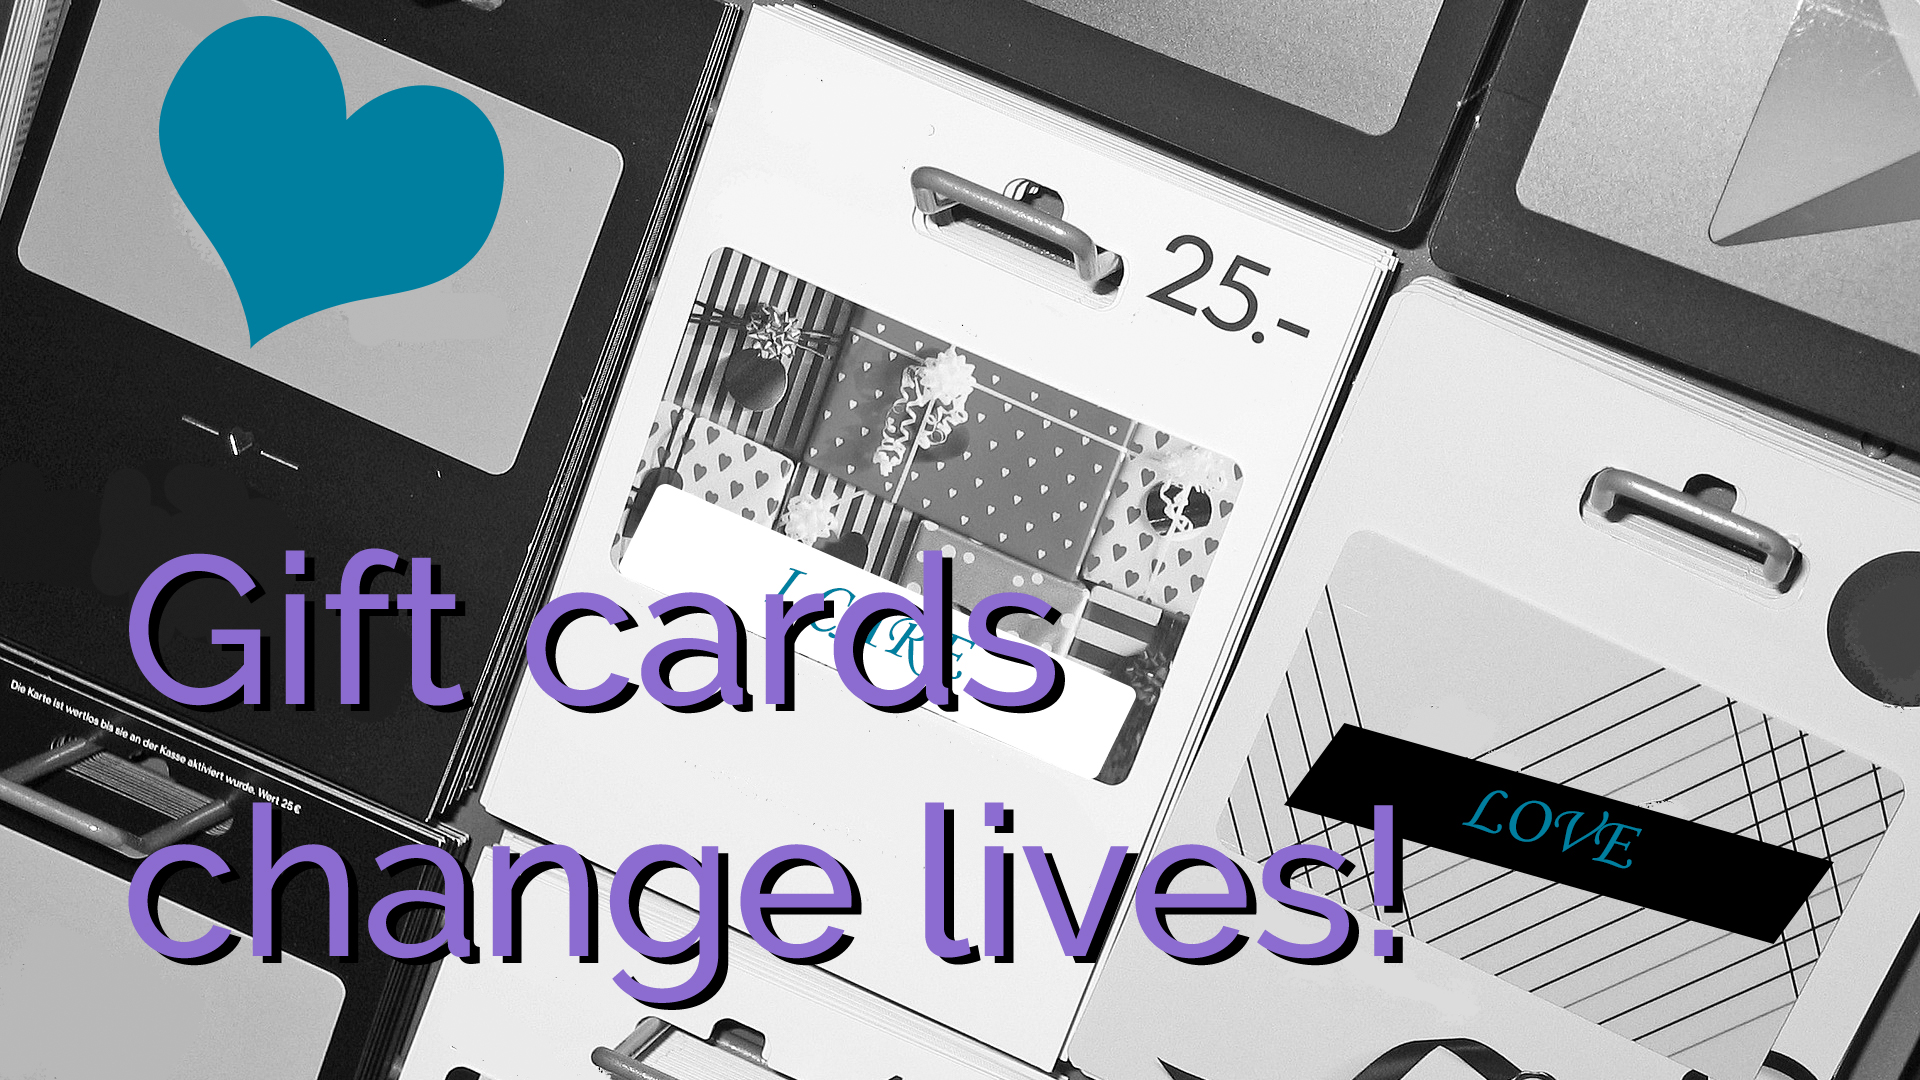 Donating gift cards changes the life of someone escaping abuse.